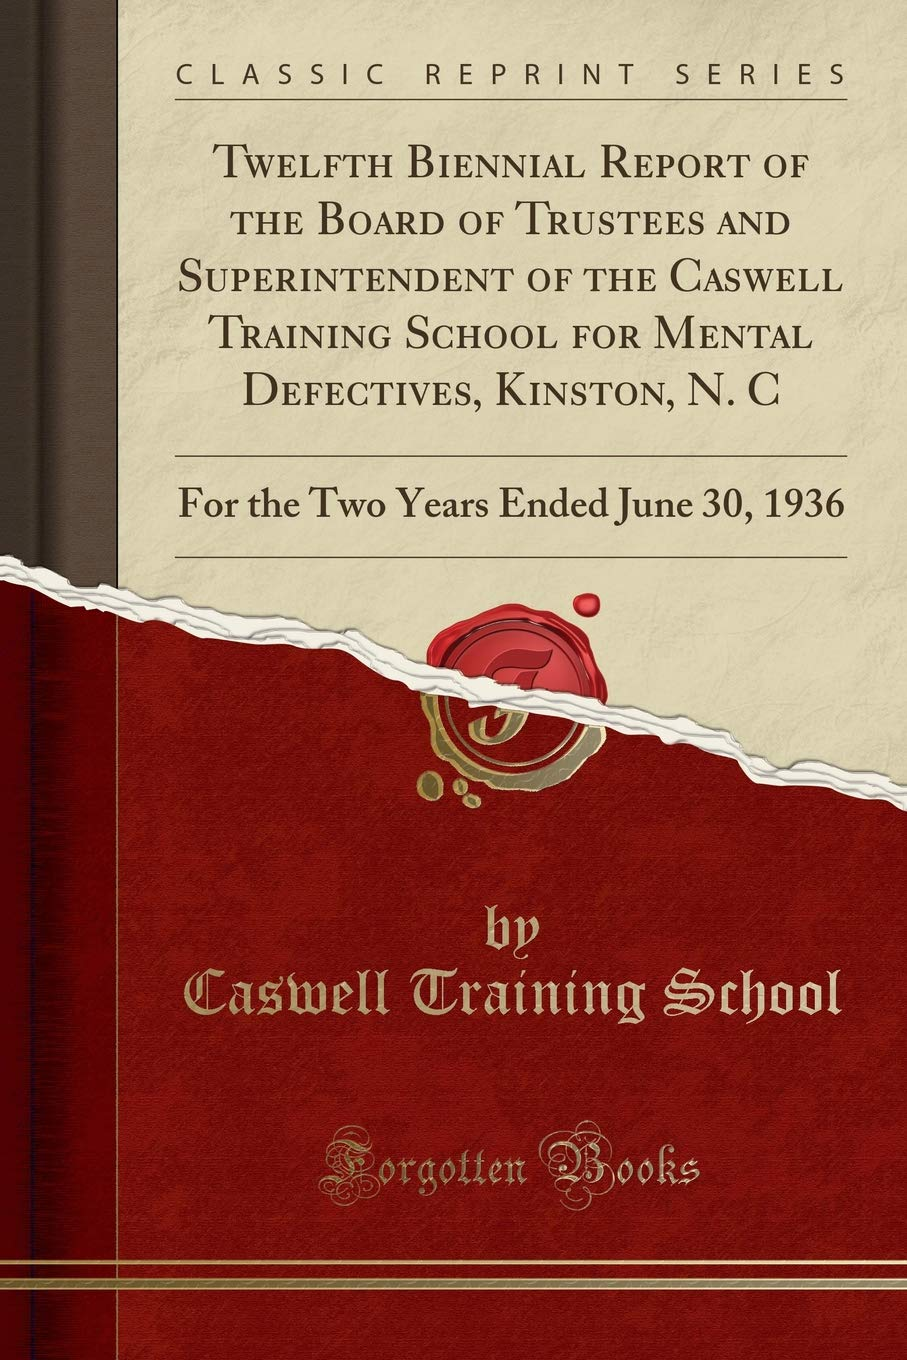 Download Twelfth Biennial Report of the Board of Trustees and Superintendent of the Caswell Training School for Mental Defectives, Kinston, N. C: For the Two Years Ended June 30, 1936 (Classic Reprint) pdf epub